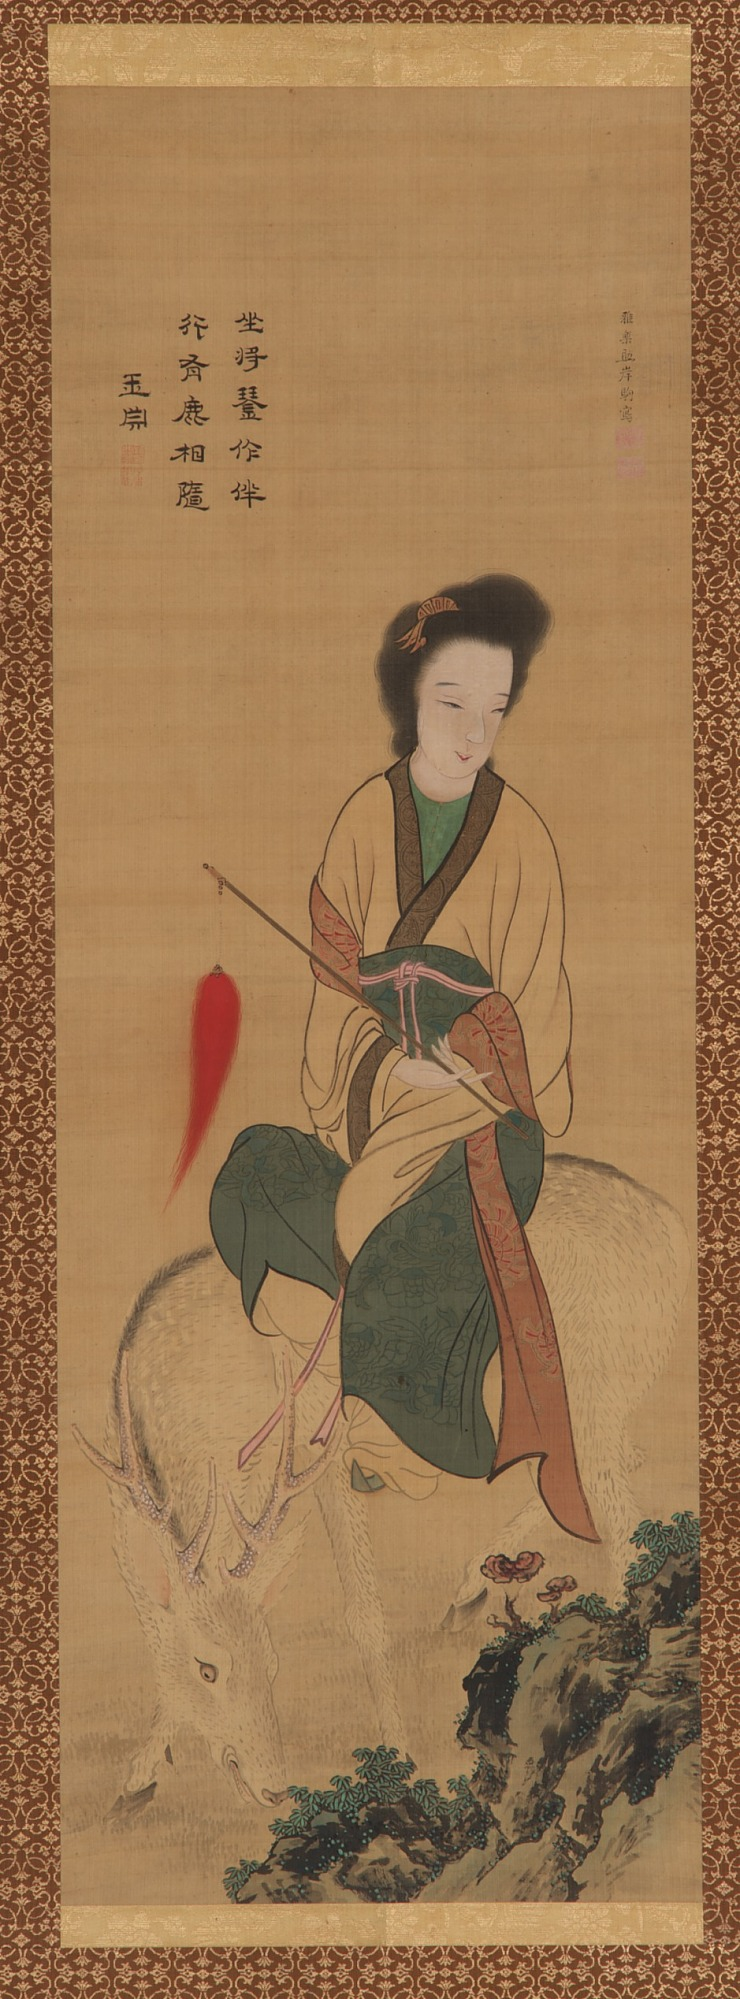 : A female immortal riding on a white deer